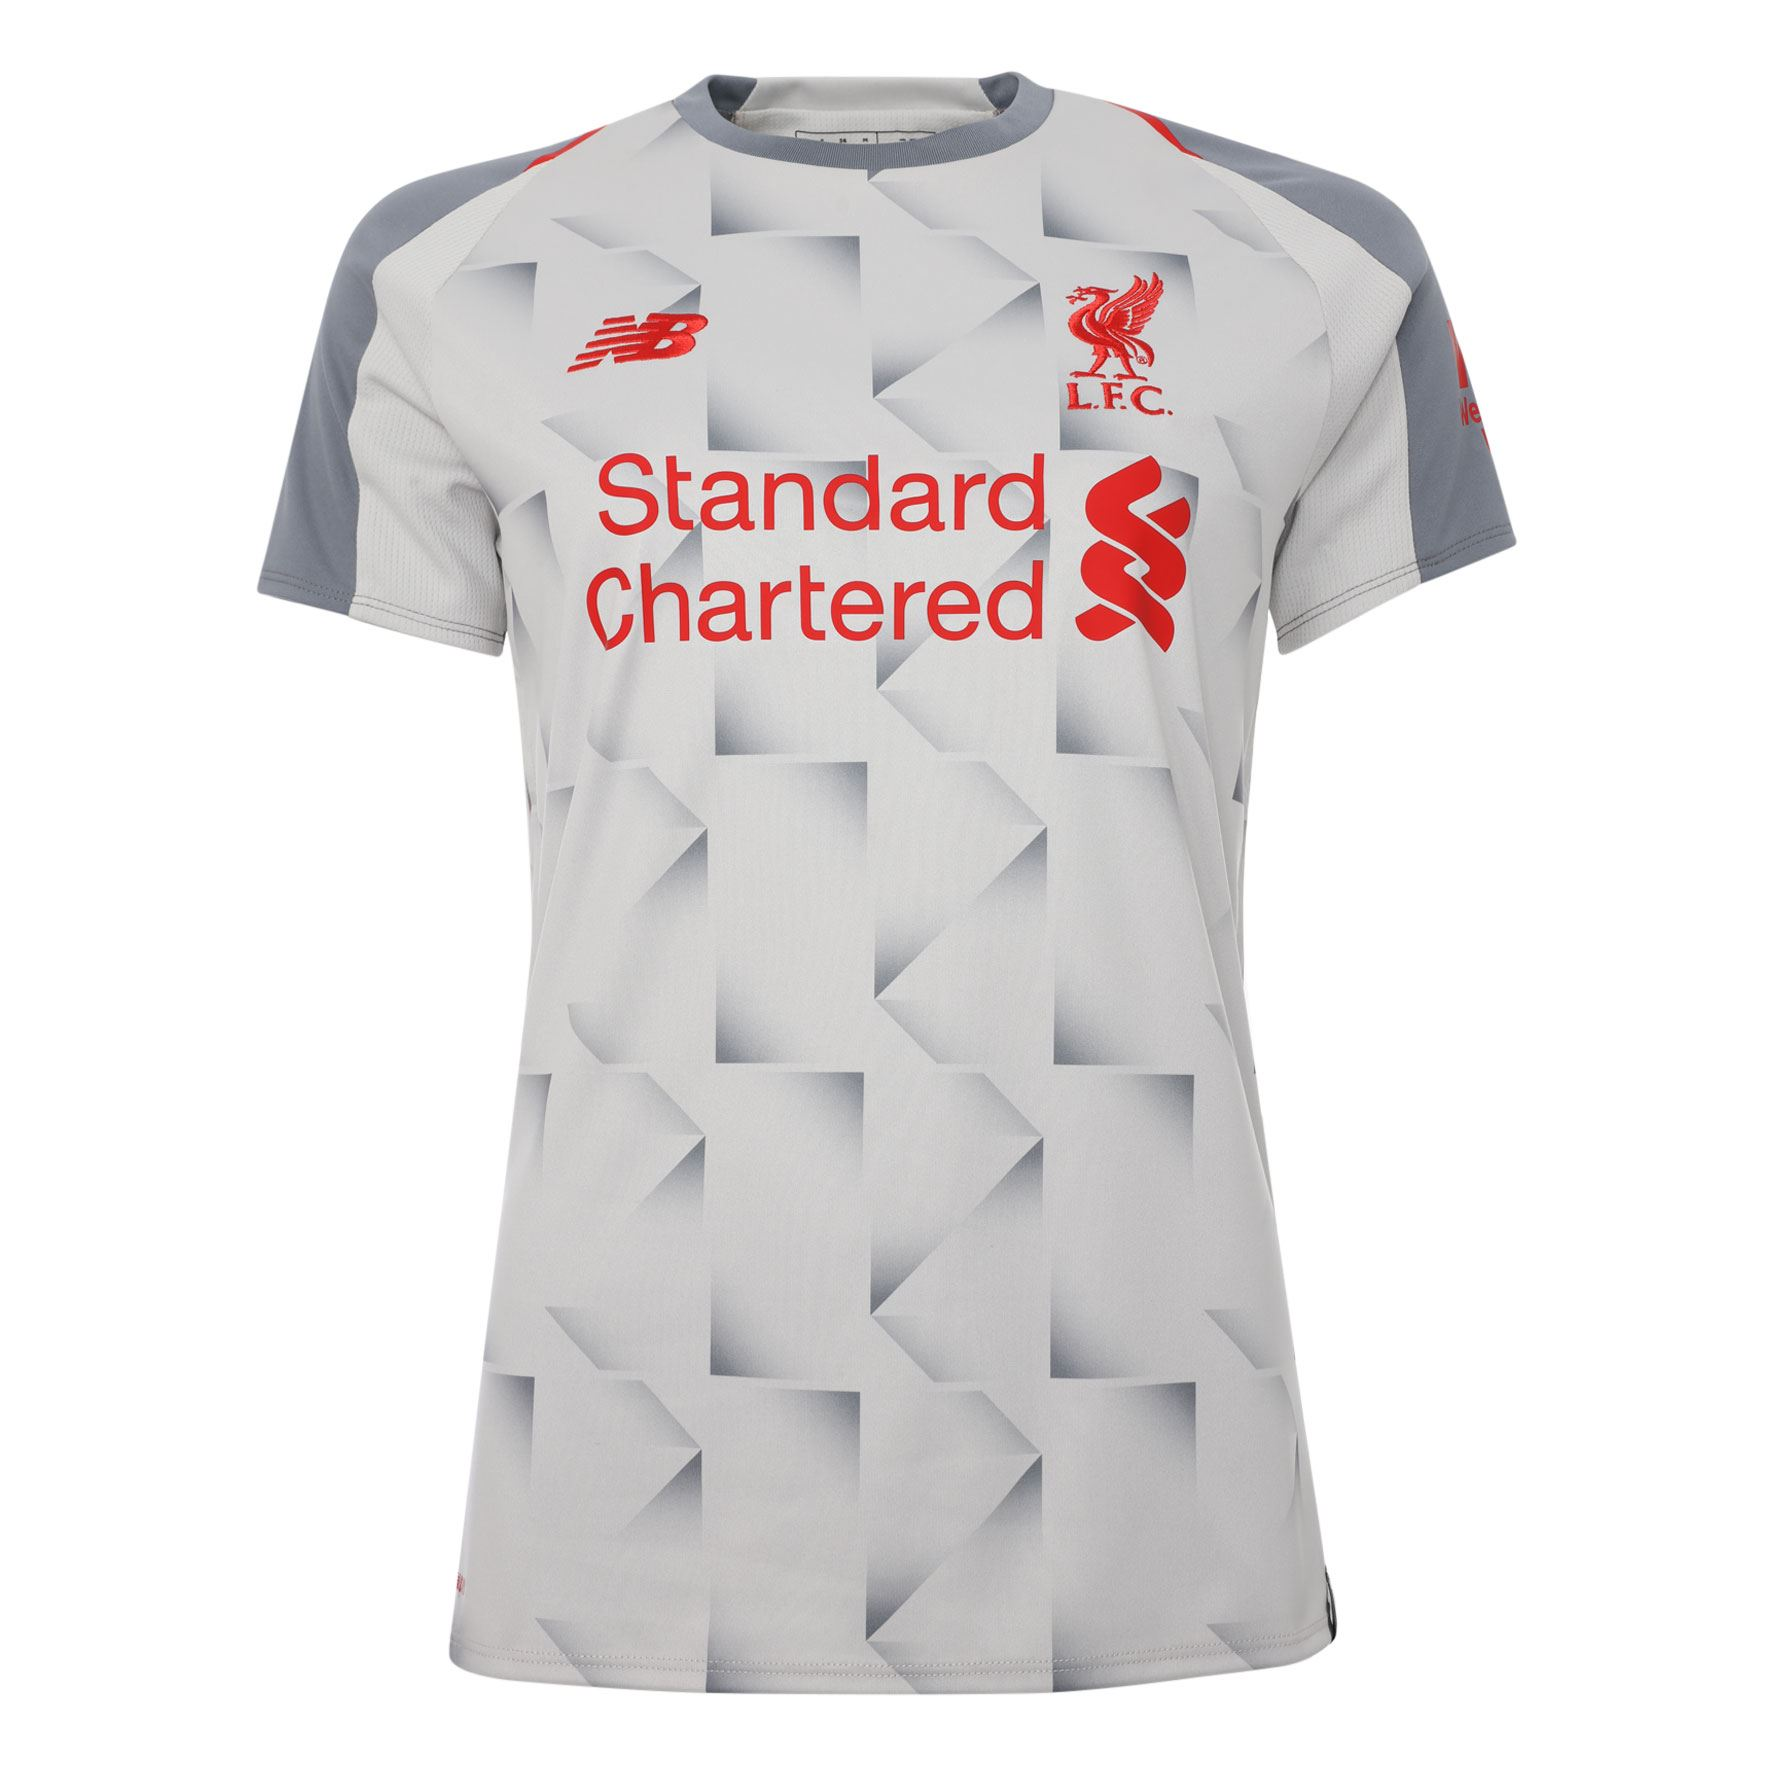 Details about Liverpool FC Short Sleeve Grey Womens Football Third Shirt  18 19 LFC Official c86d0b40f4